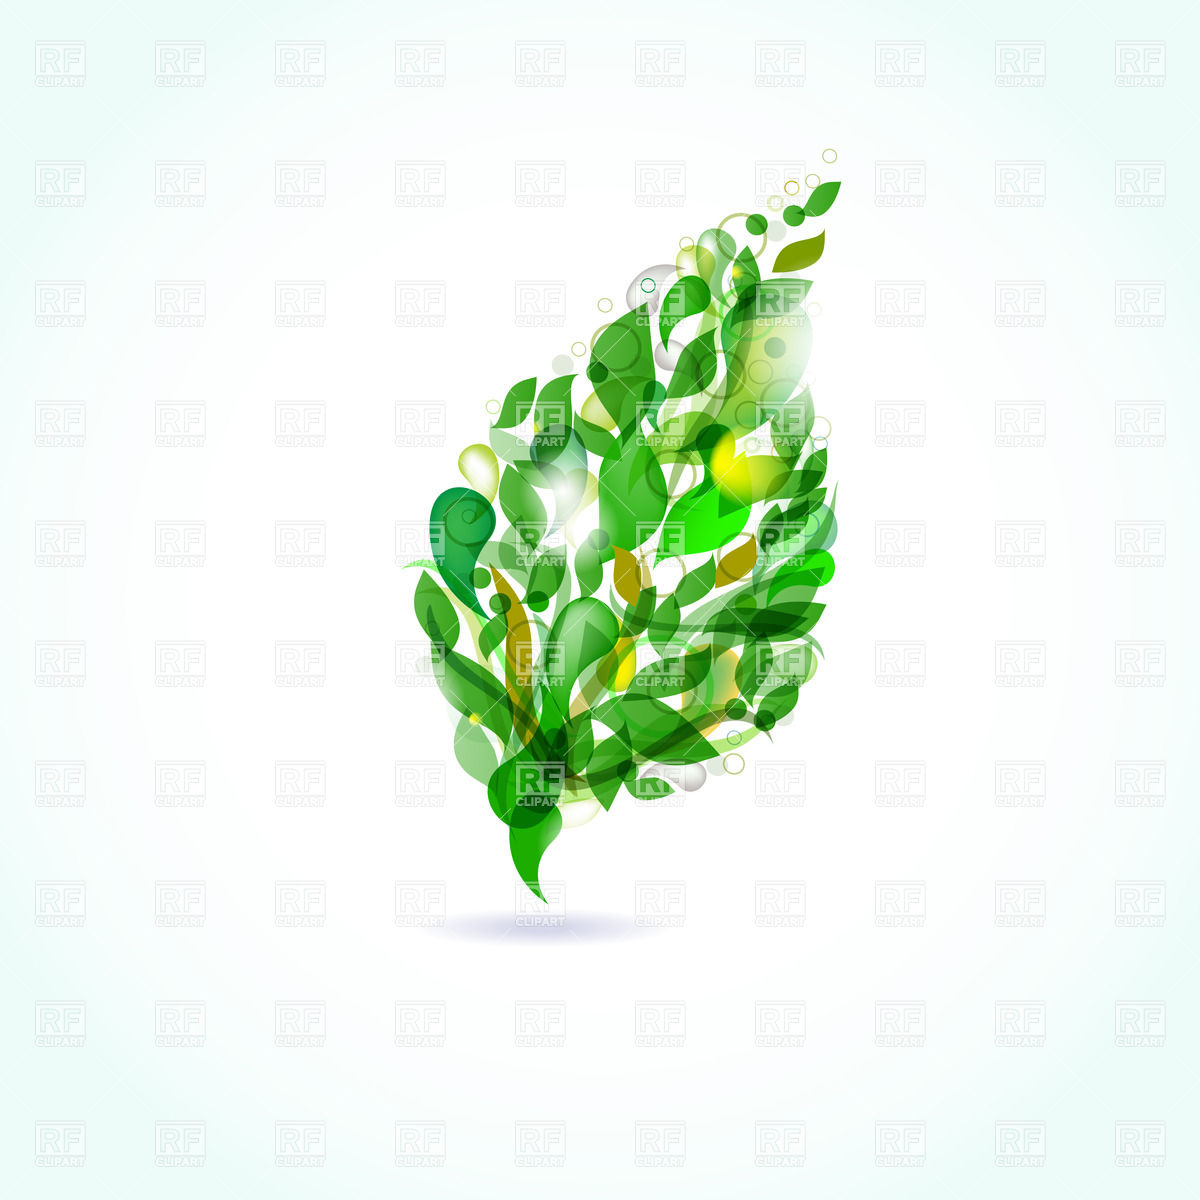 1200x1200 Abstract Ornate Green Leaf Vector Image Vector Artwork Of Plants